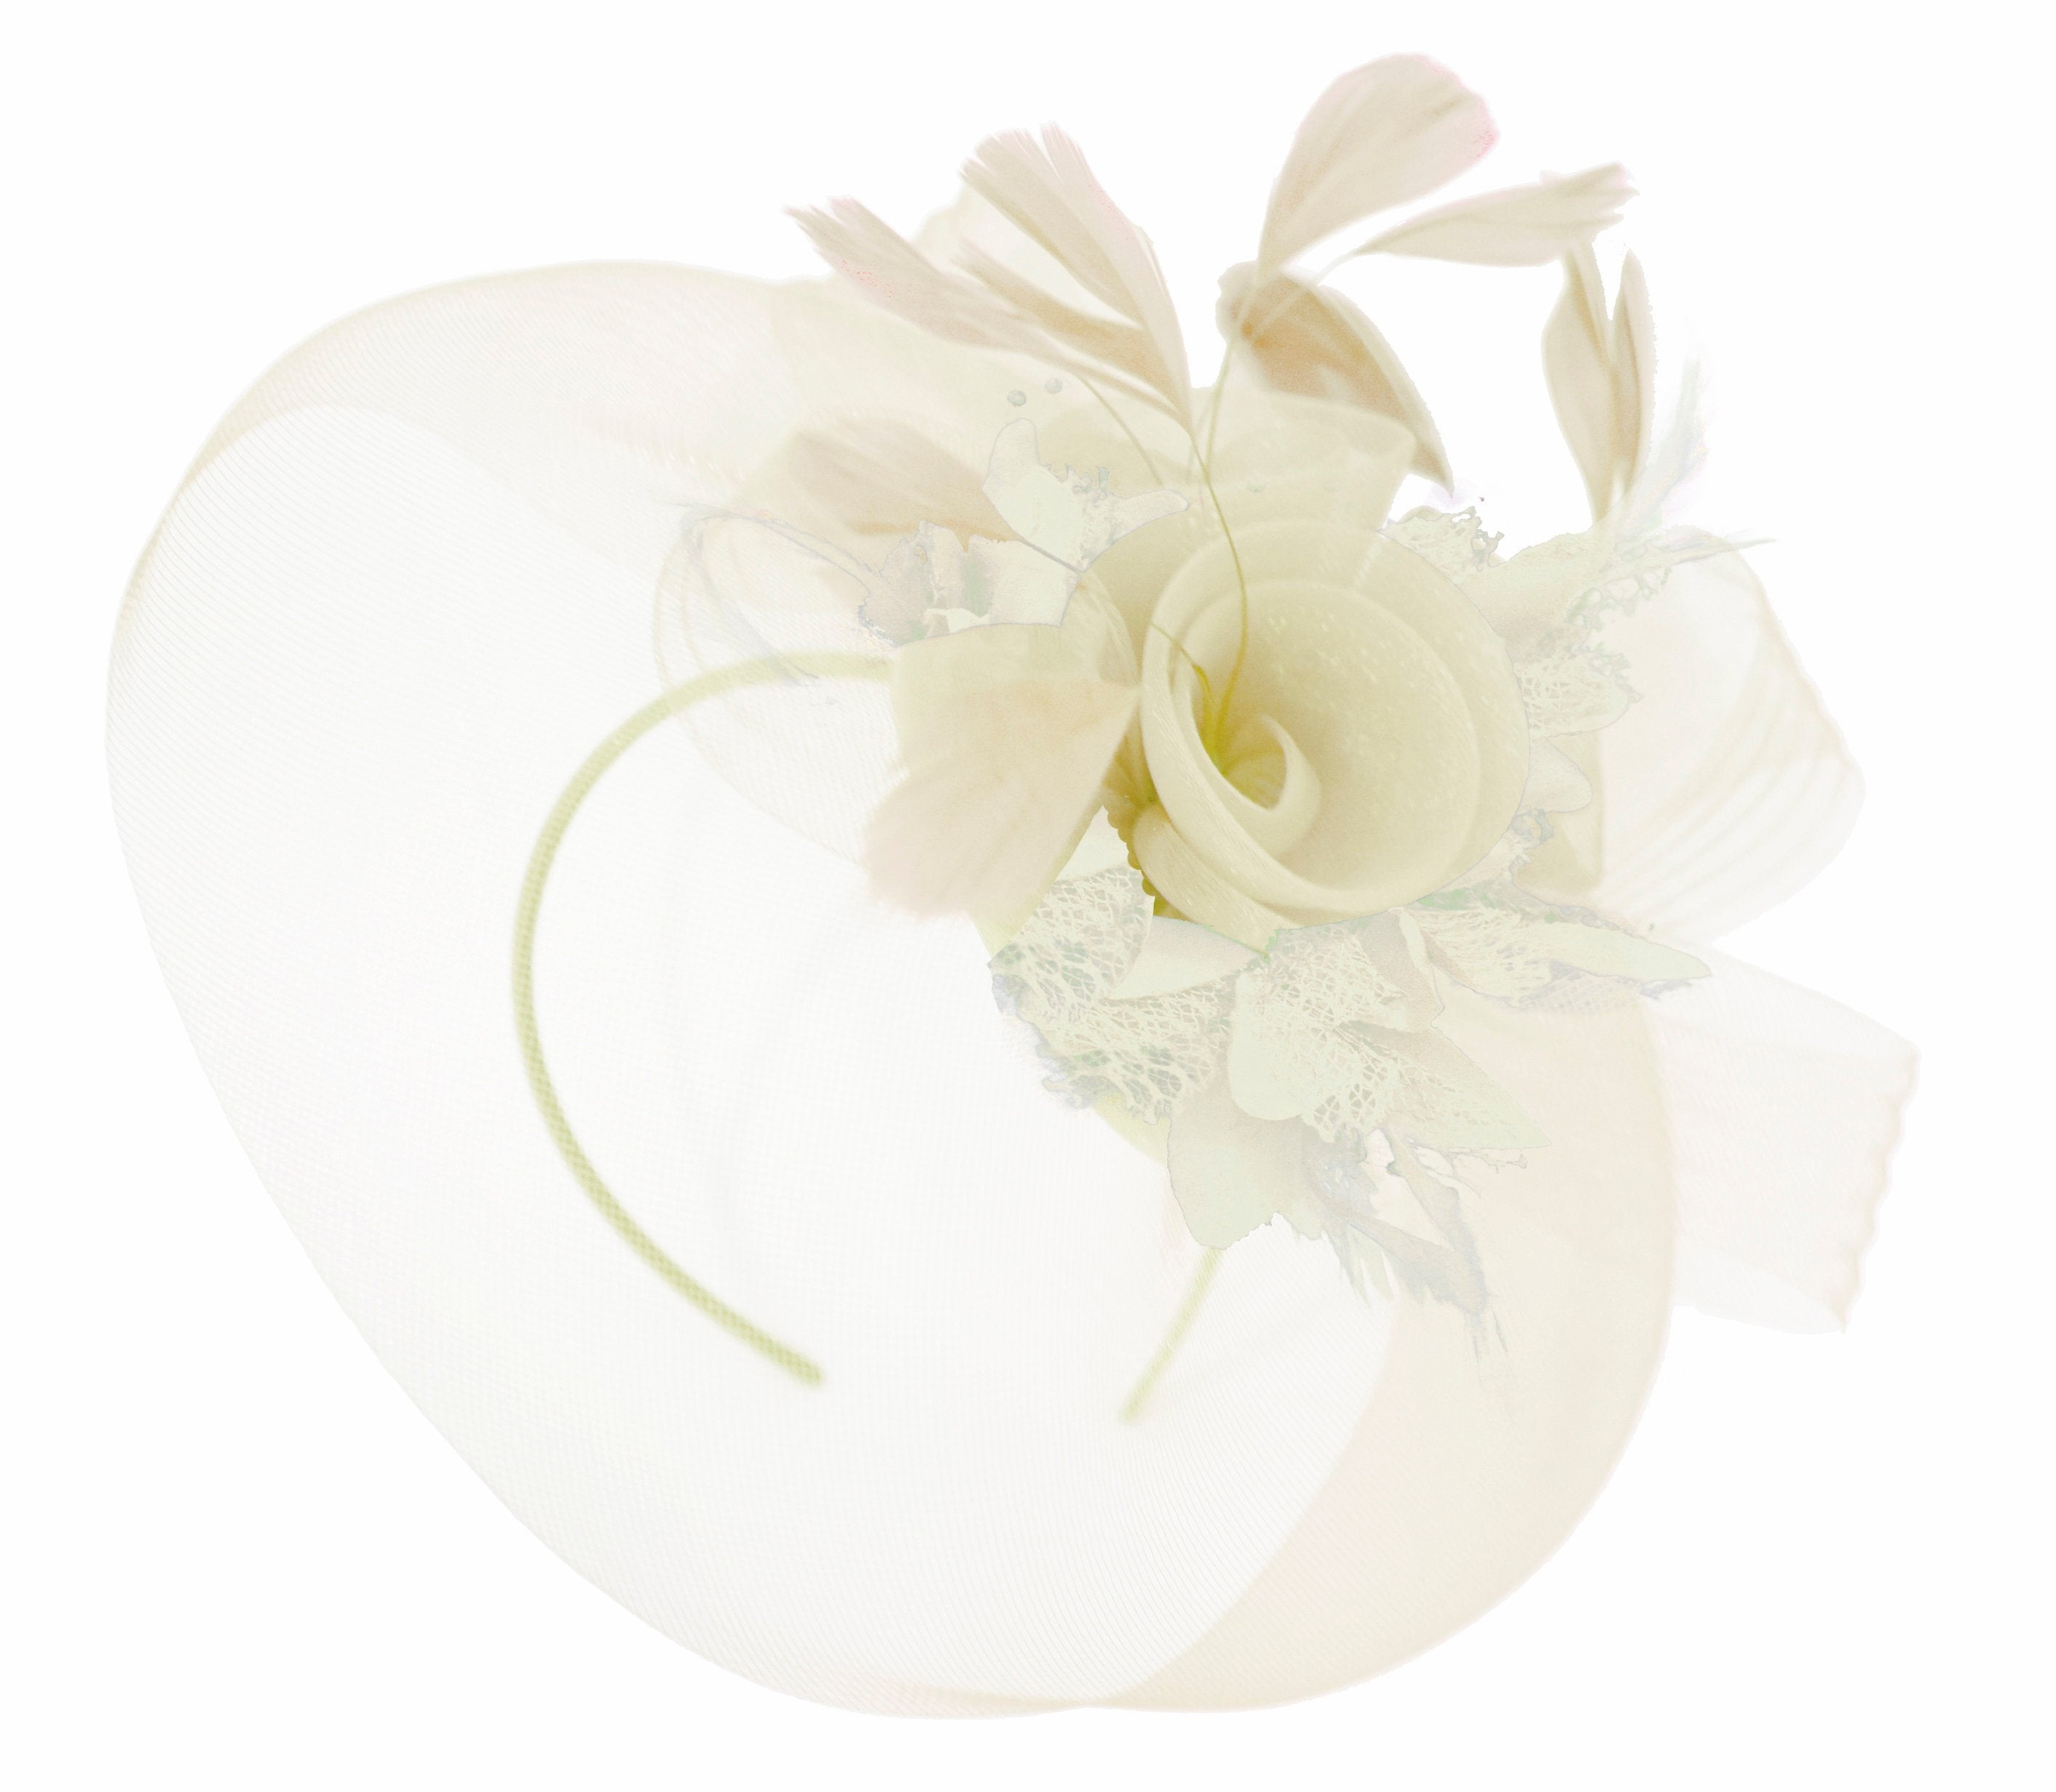 Caprilite Cream Fascinator on Headband Veil UK Wedding Ascot Races Hatinator Women